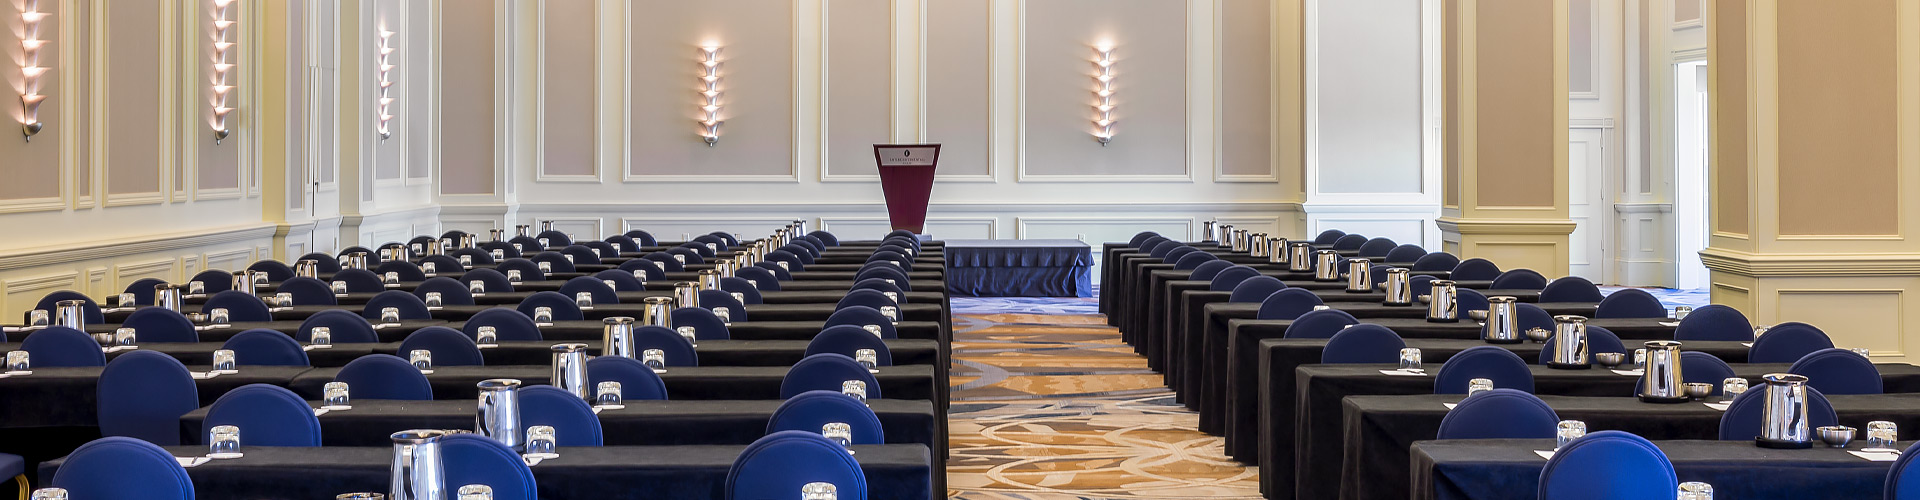 Meeting space ready for a conference header